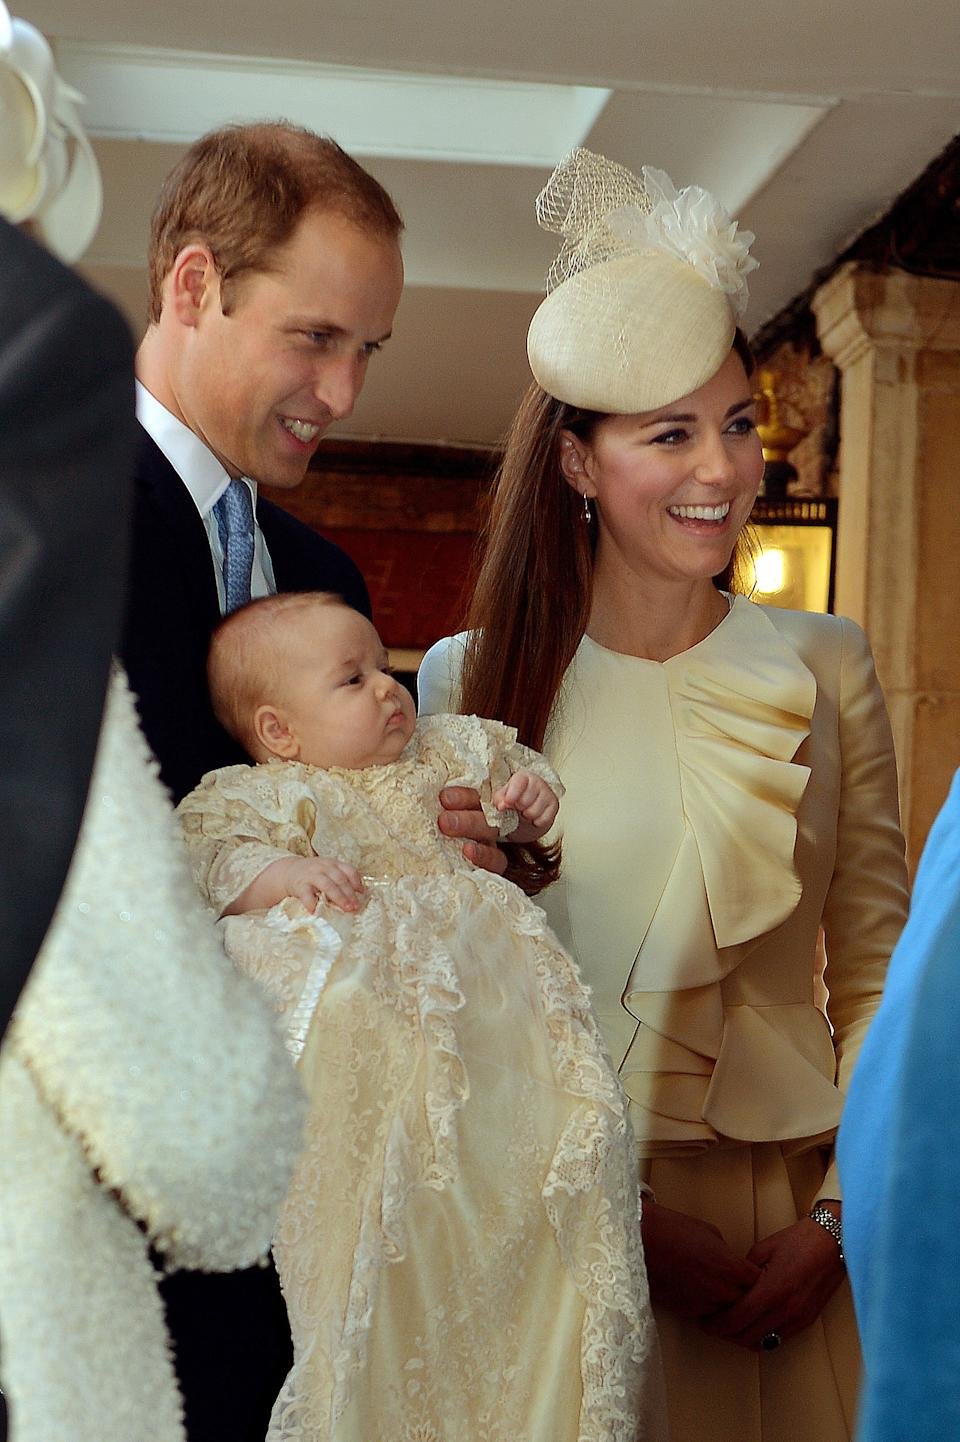 The Duke and Duchess of Cambridge with their son Prince George arrive at Chapel Royal in St James's Palace, ahead of the christening of the three month-old Prince George of Cambridge by the Archbishop of Canterbury in central London.